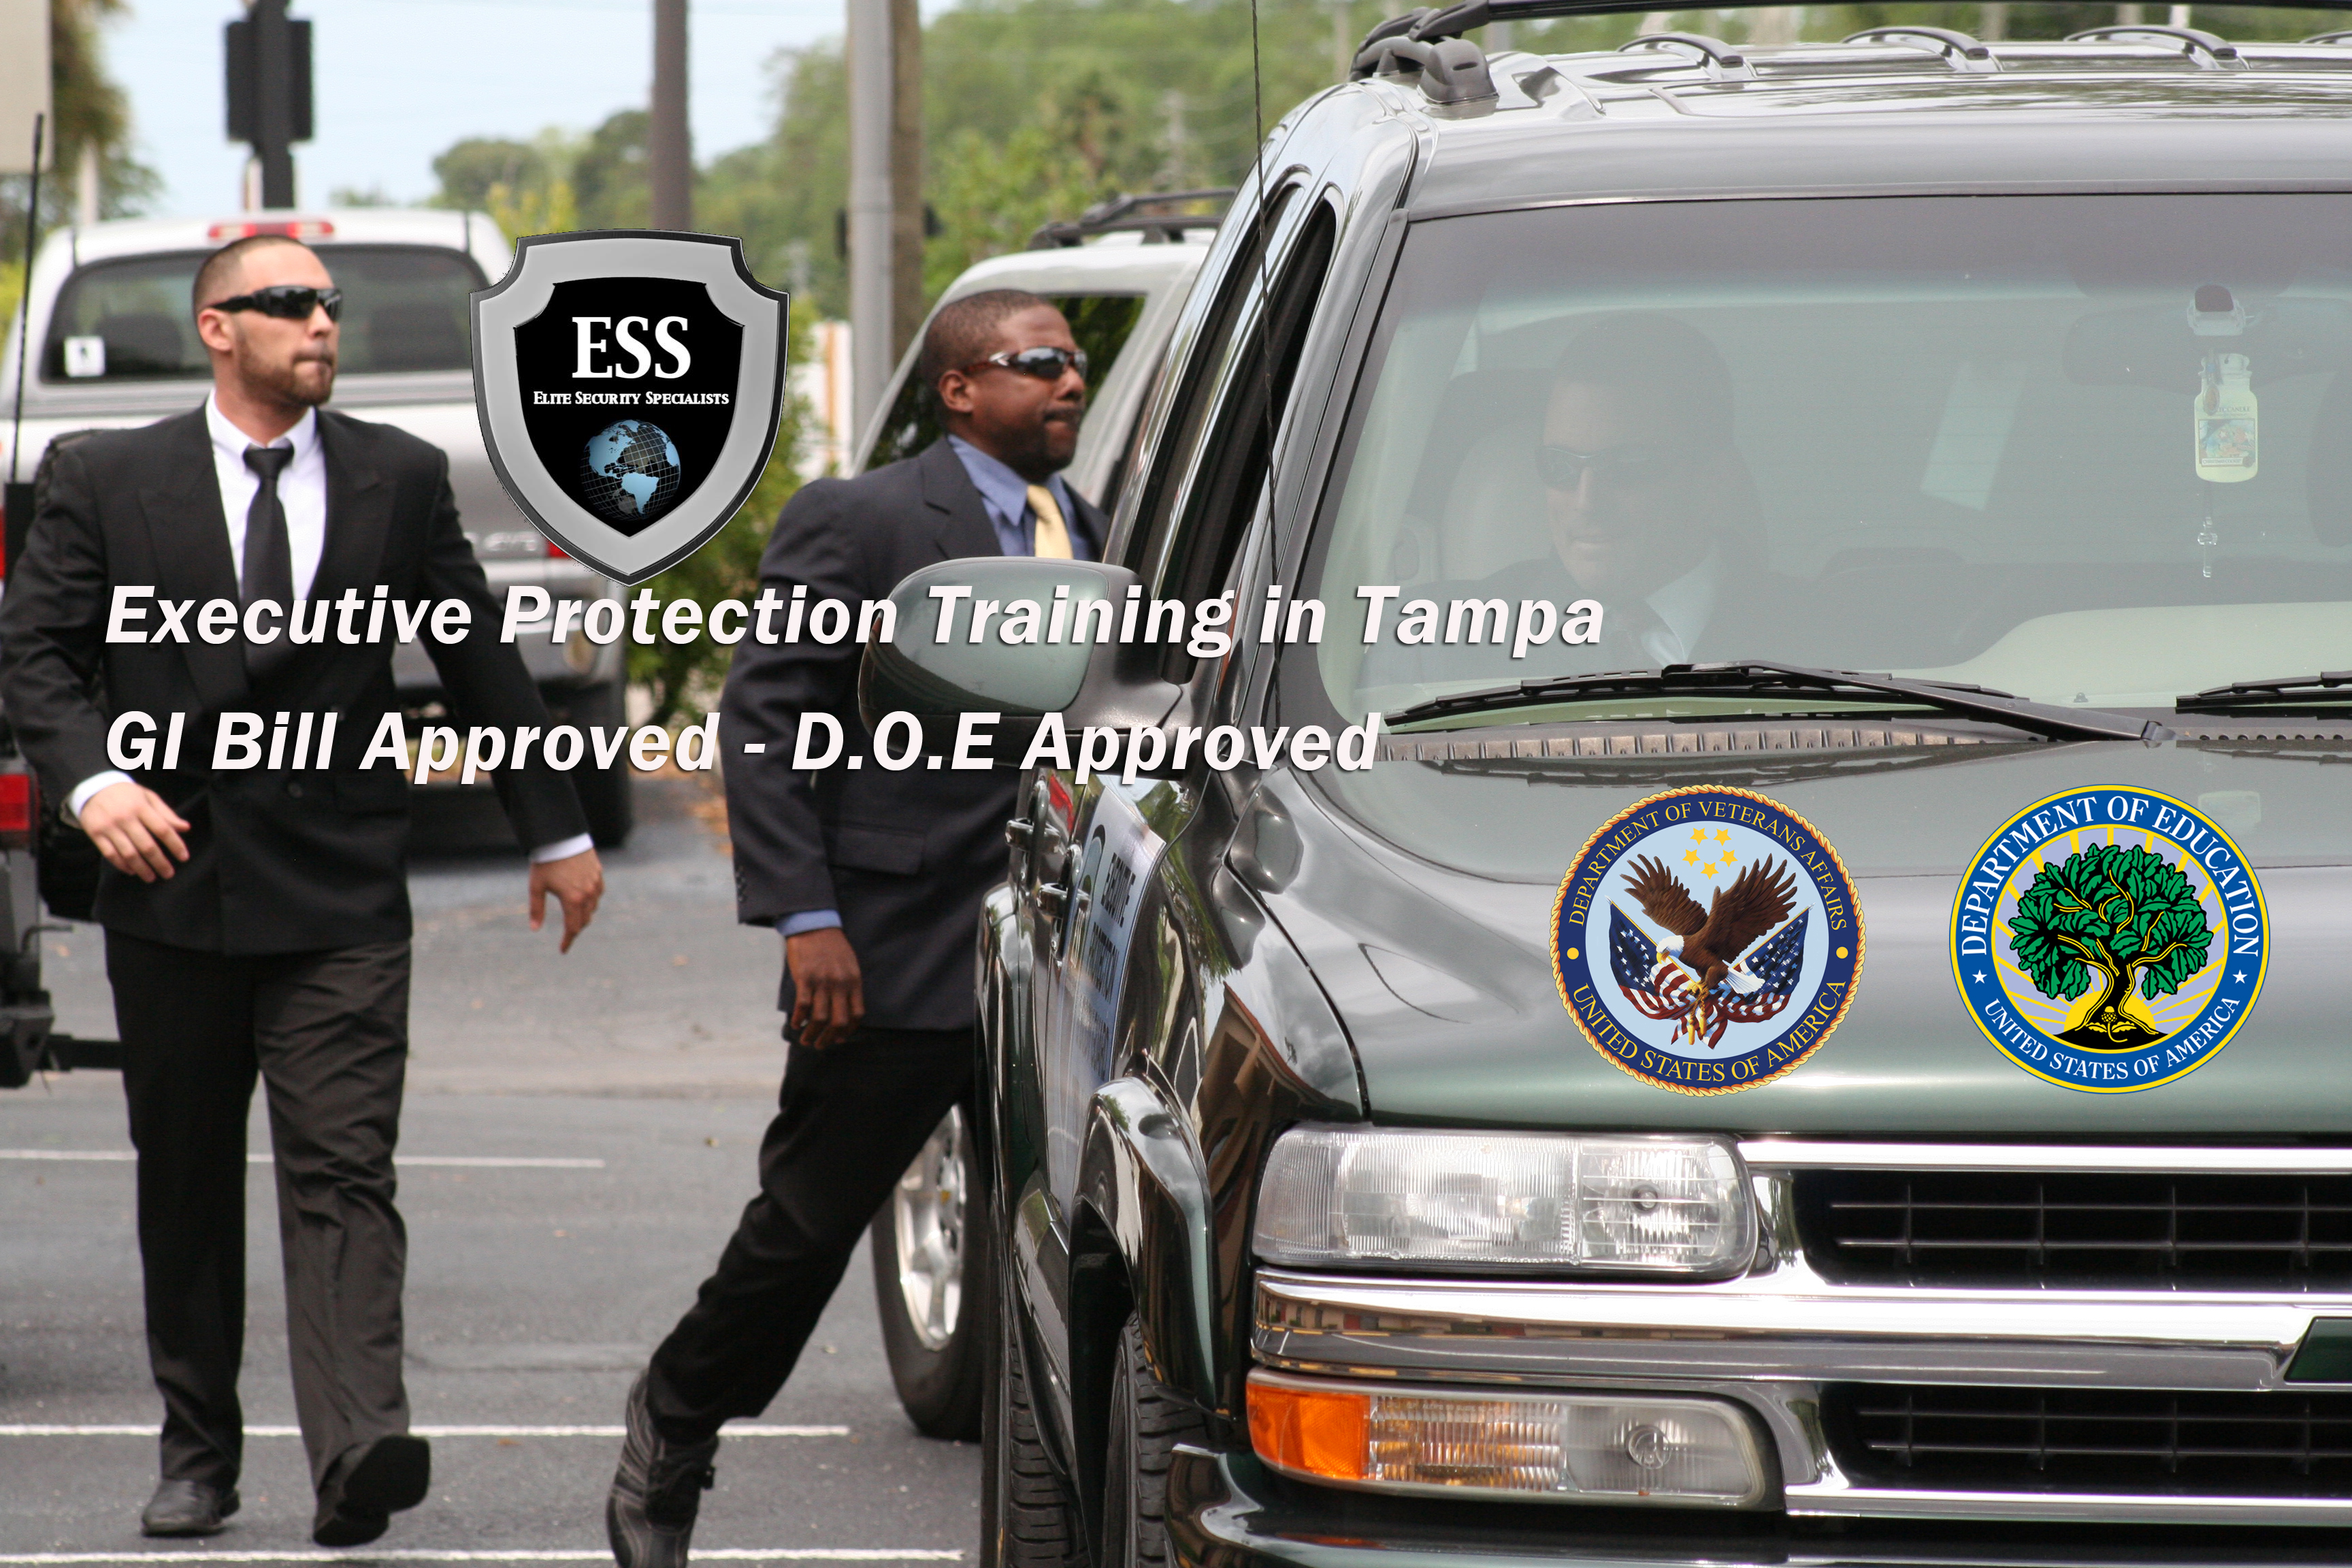 Vip Protection Training